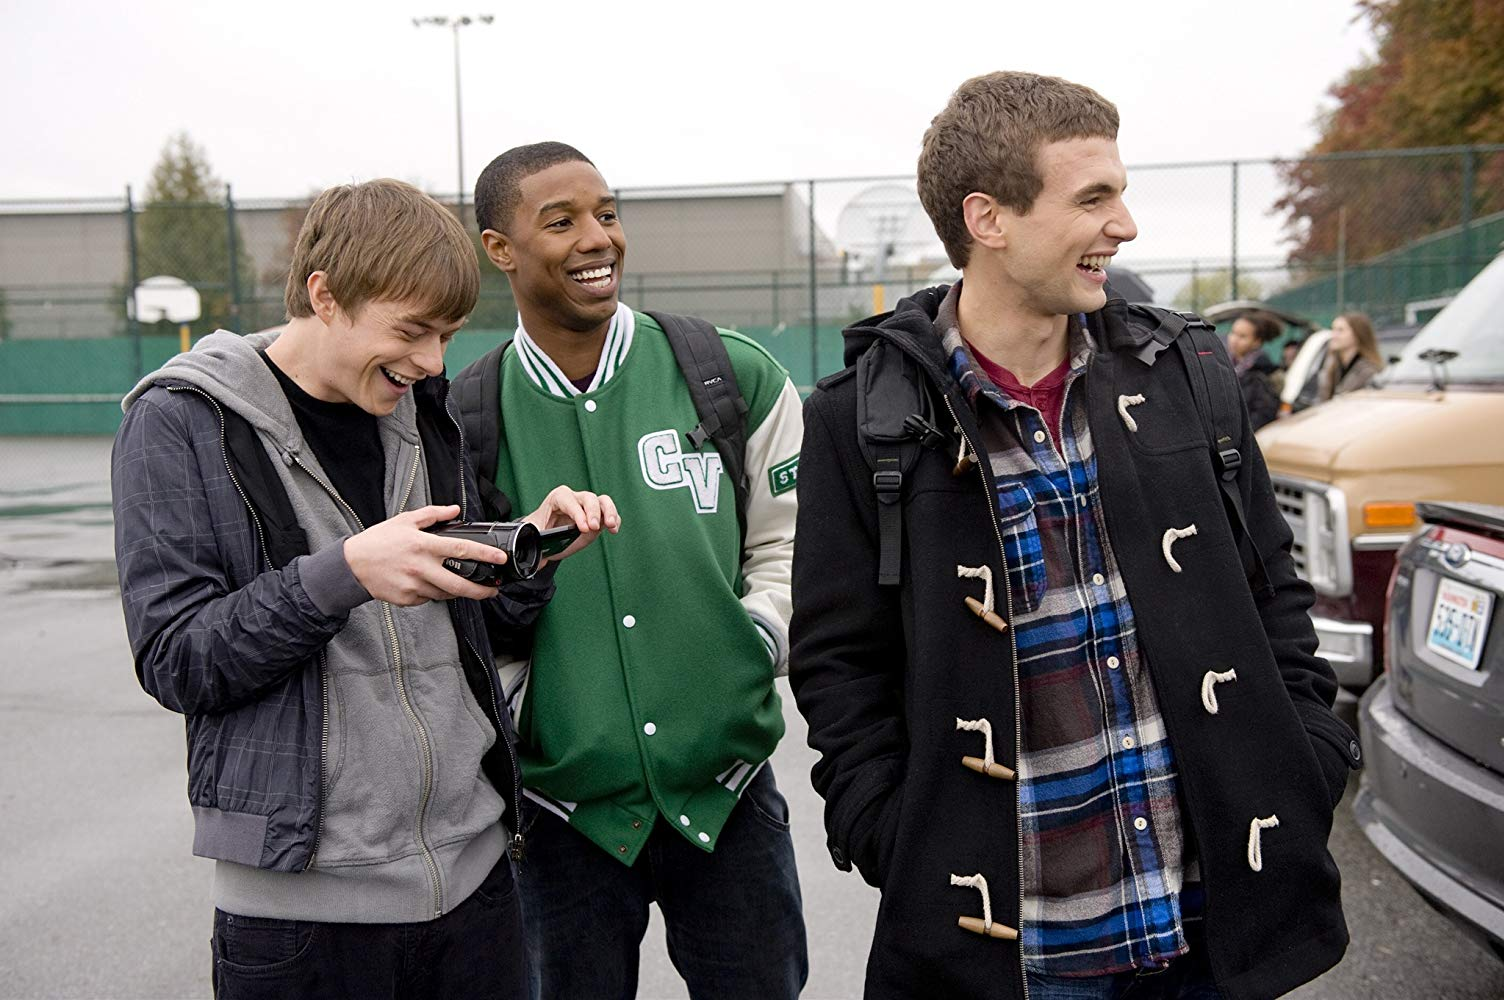 Three teens with a video camera - (l to r) Dane DeHaan, Michael B. Jordan and Alex Russell in Chronicle (2012)